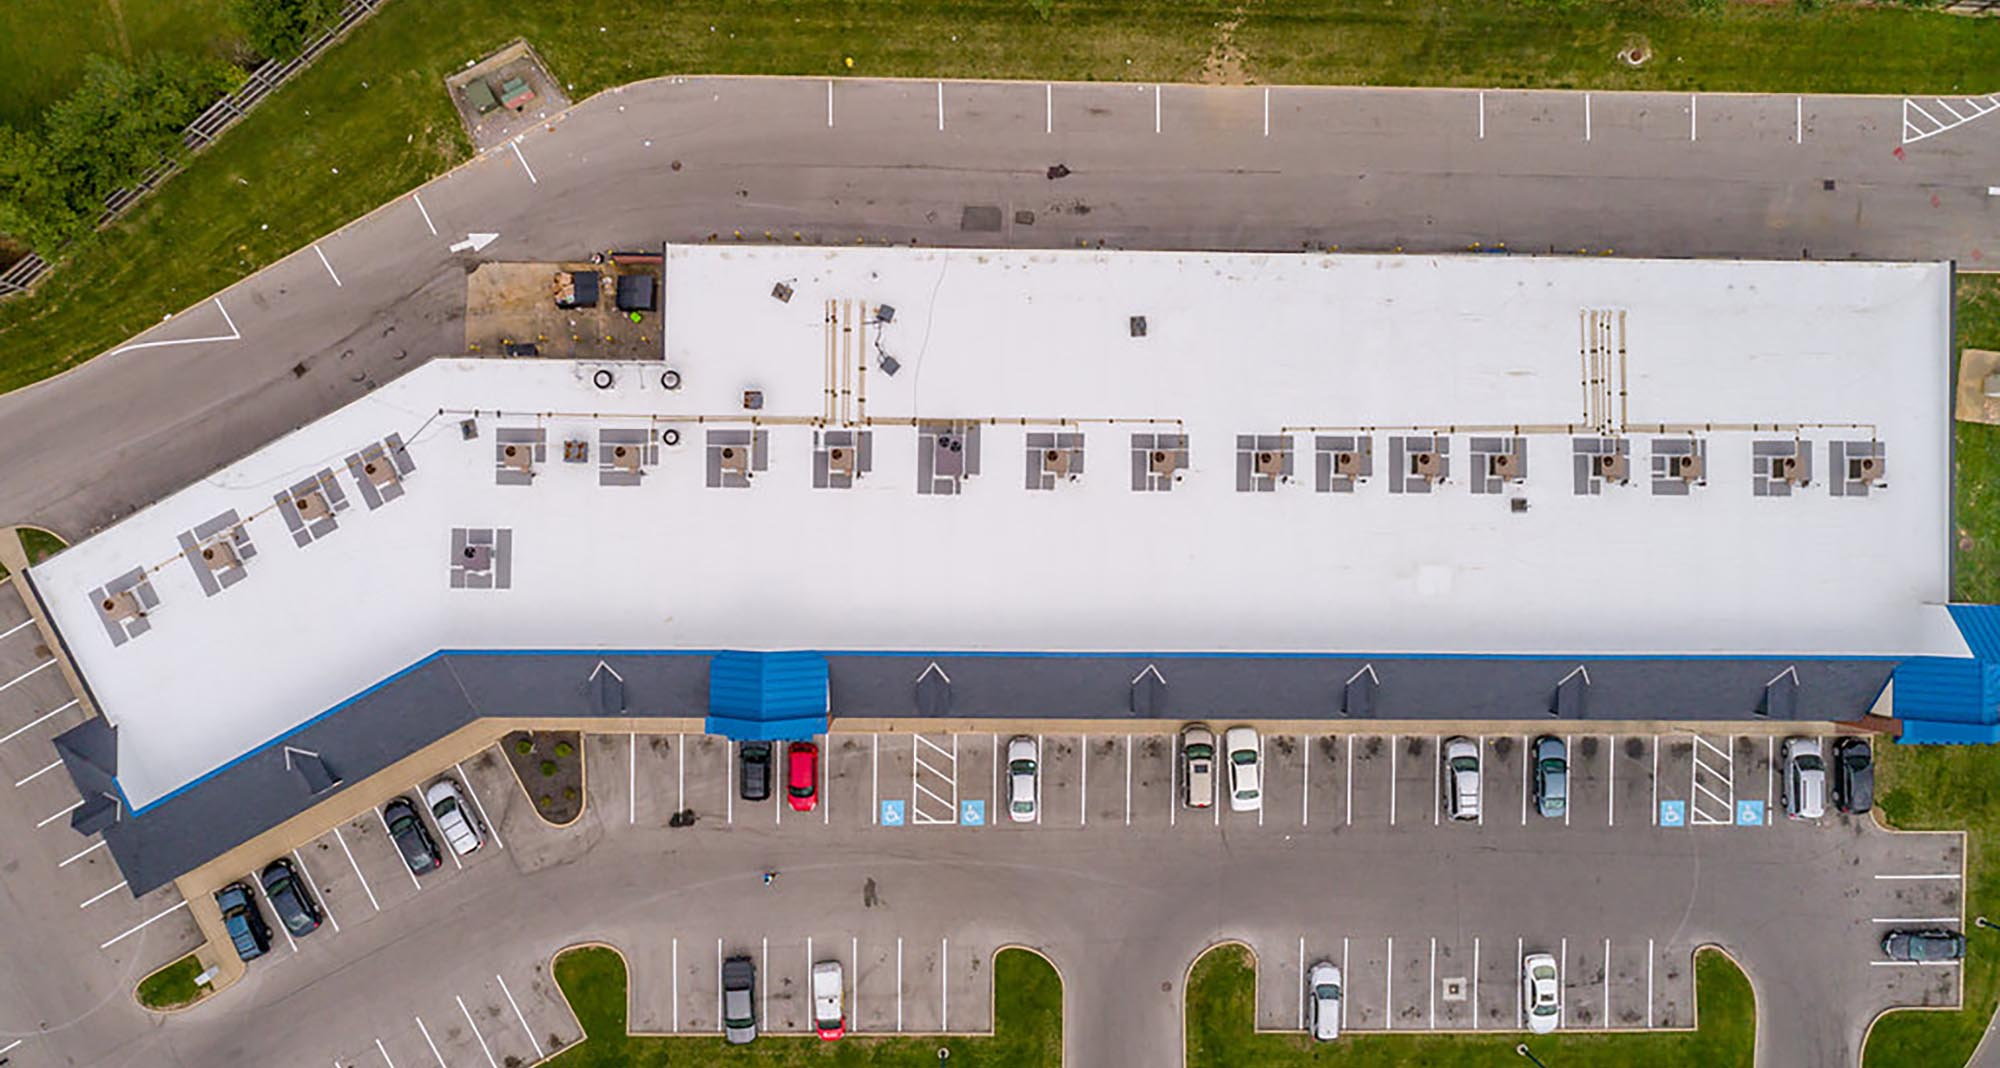 Top View of a Roof and Parking Lot